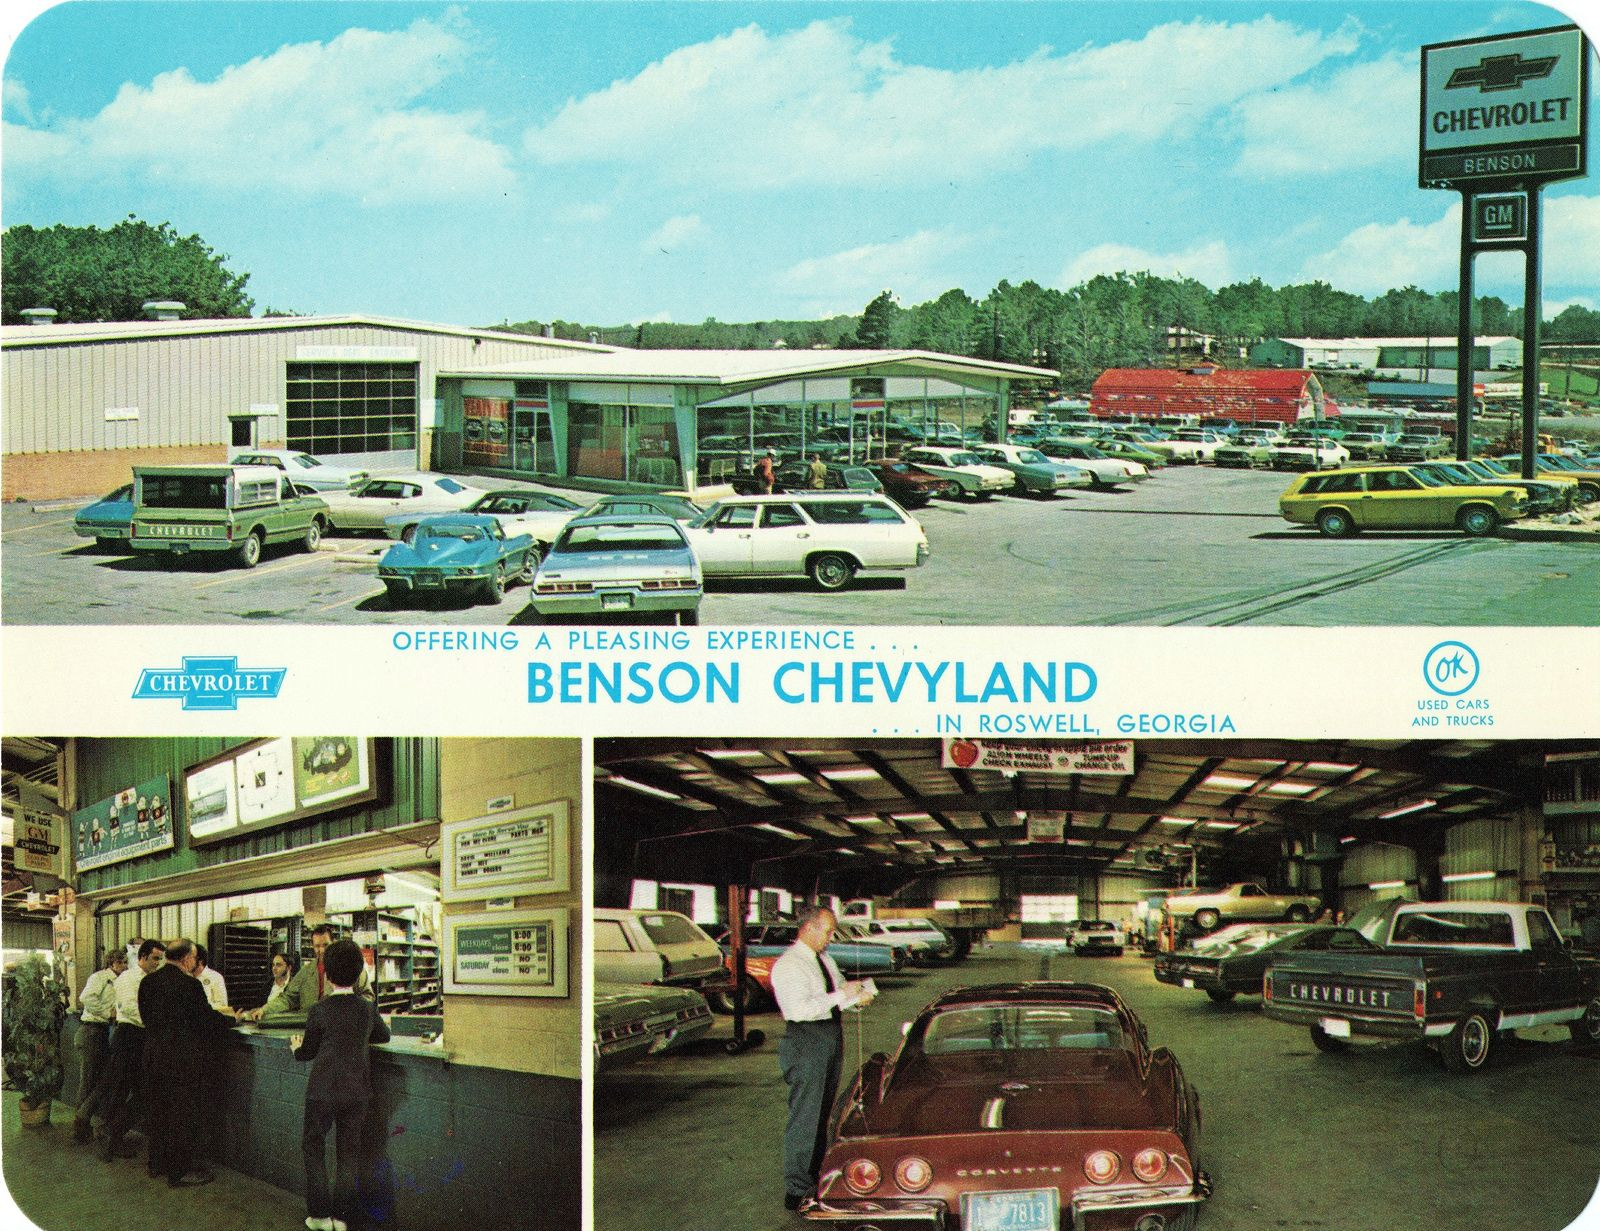 1970's Benson Chevrolet Company Dealership, Roswell, Georgia